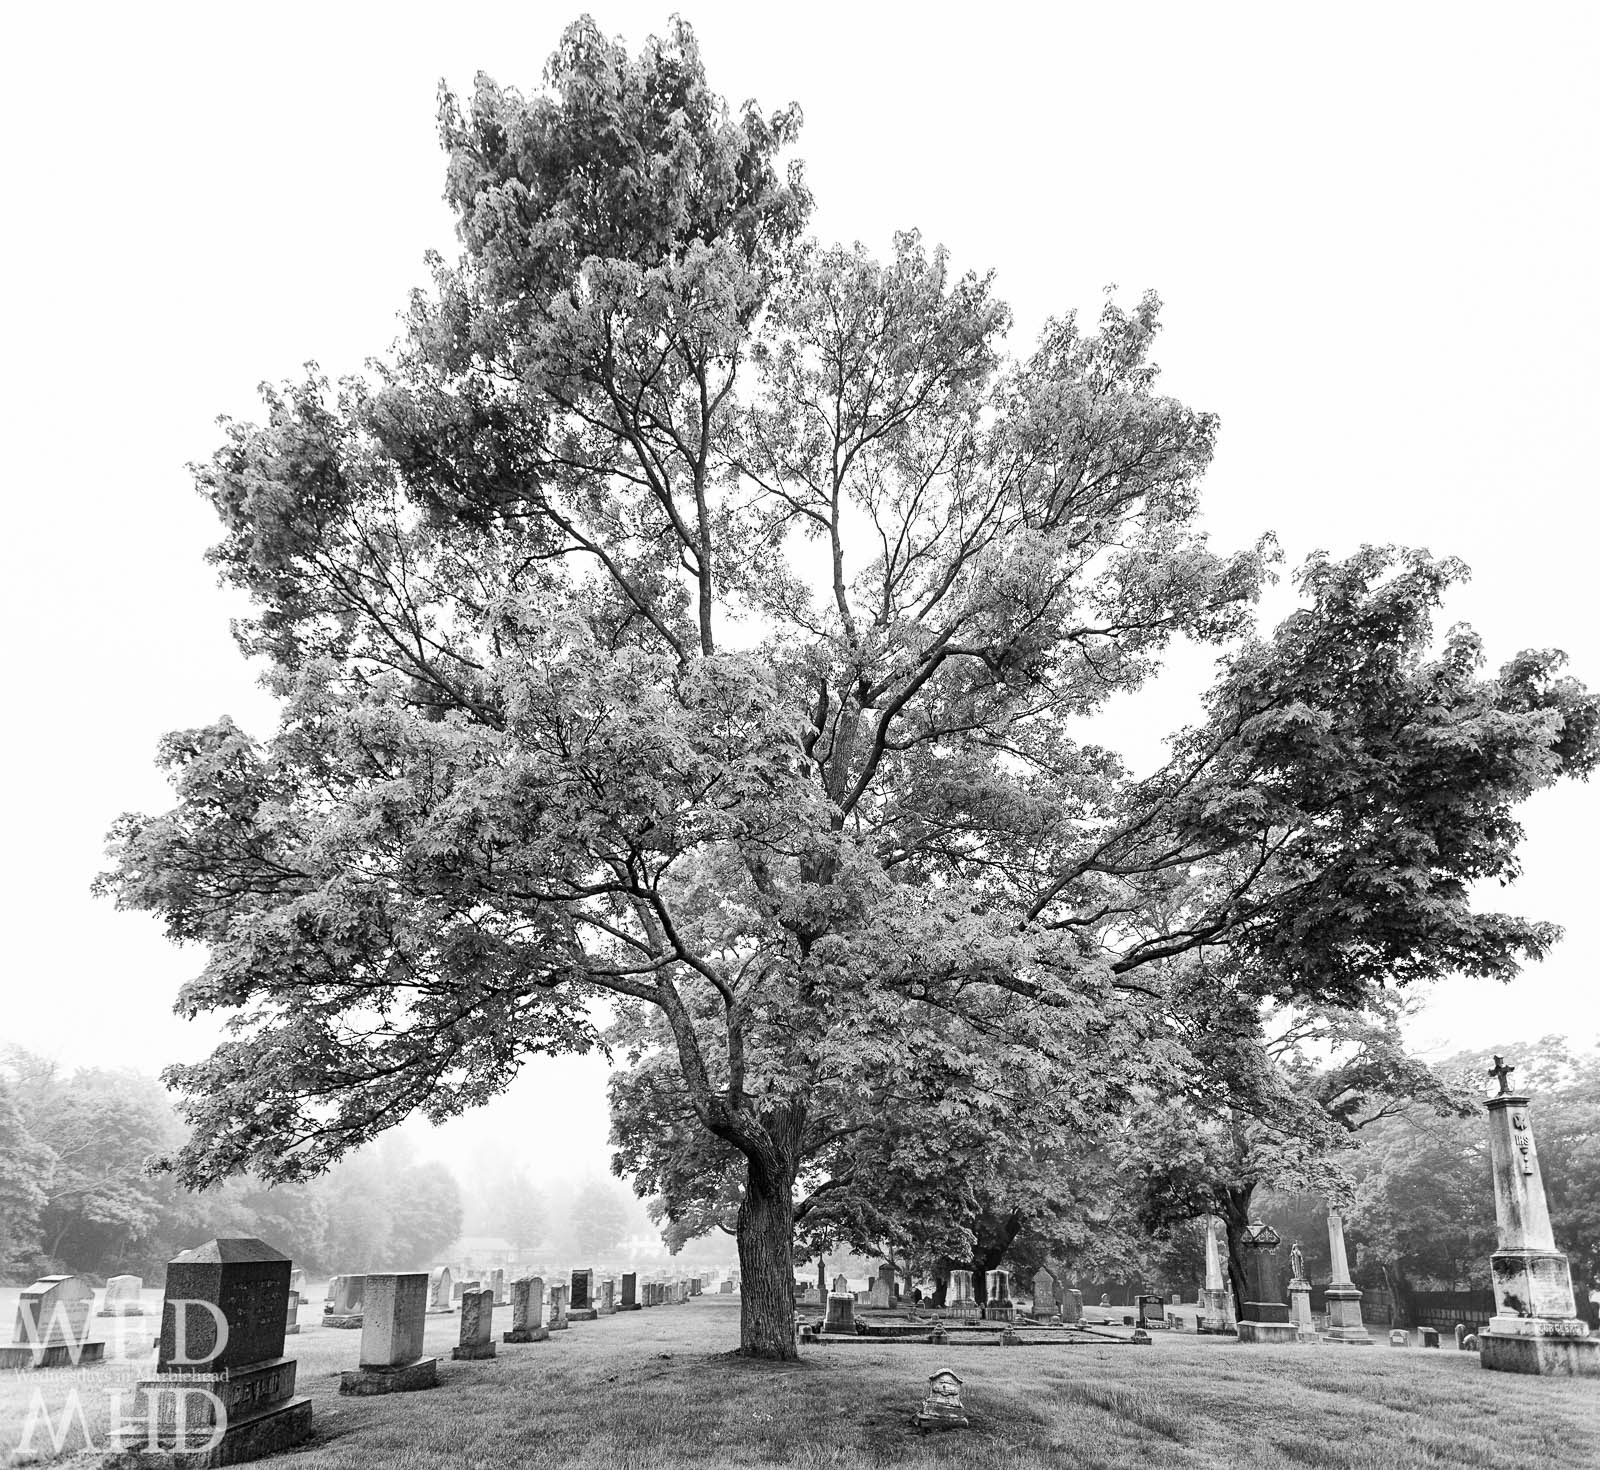 The Great Tree at Star of the Sea Cemetery